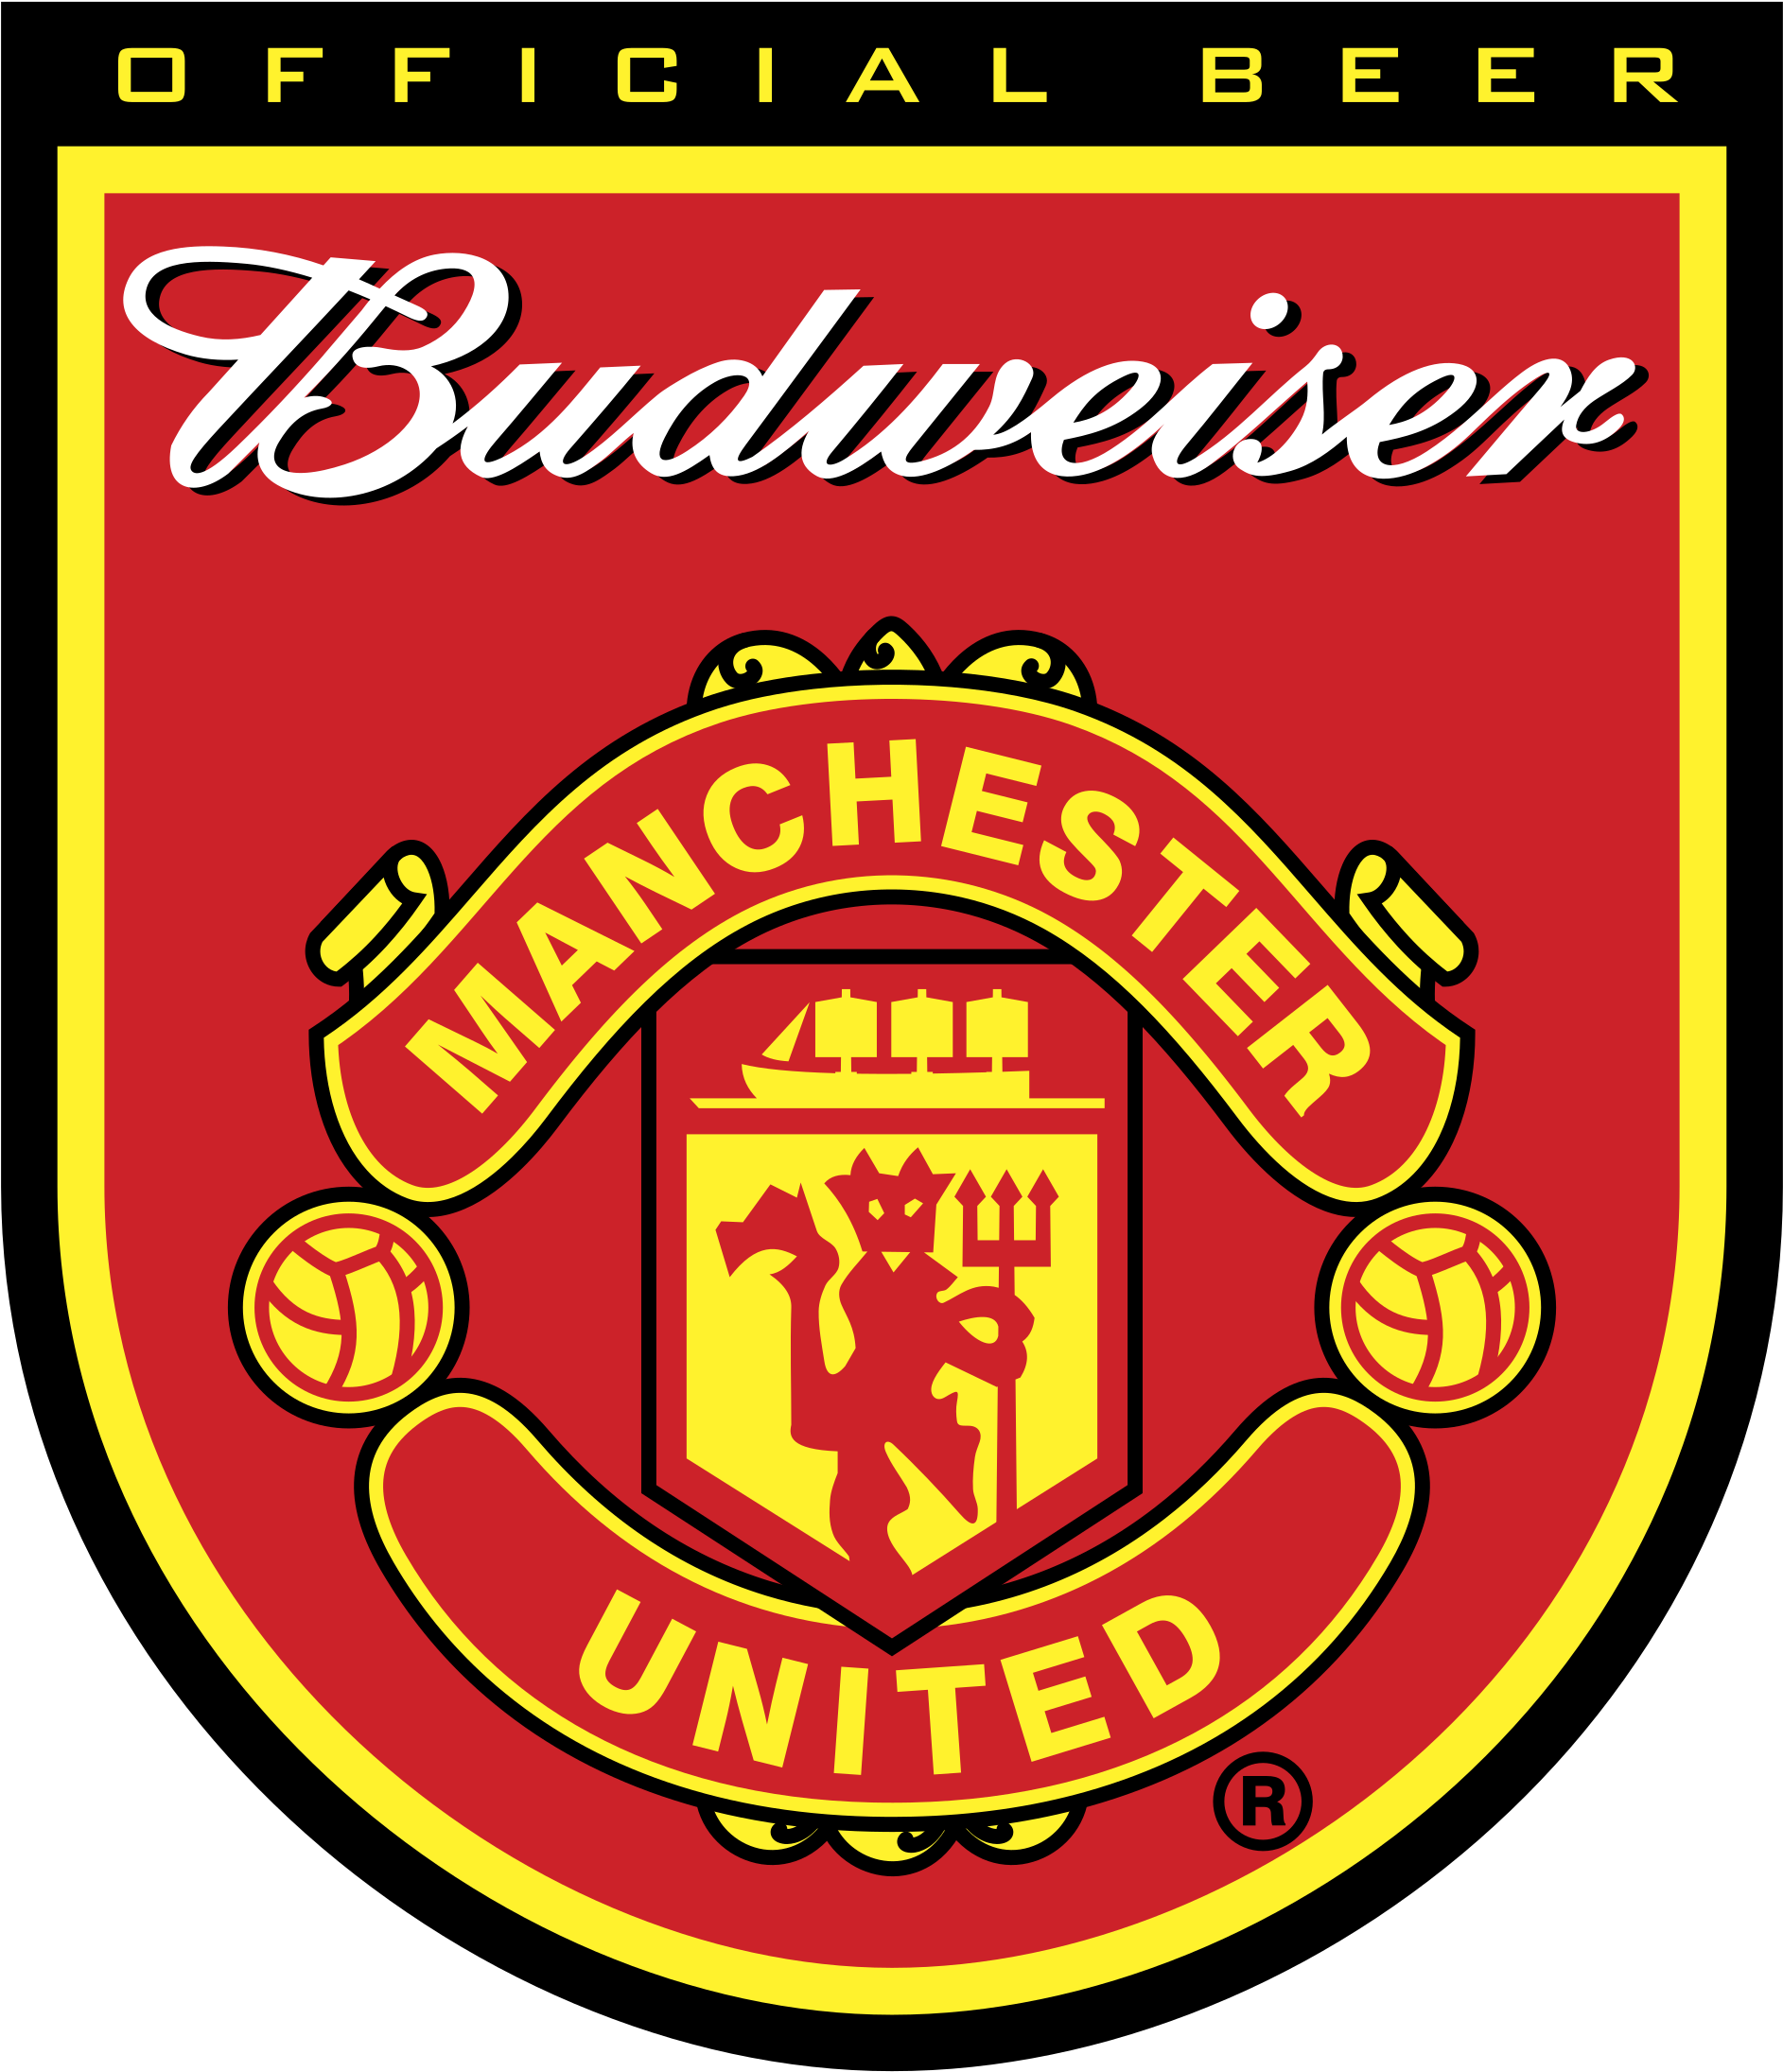 Download Hd Budweiser Manchester United Logo Png Transparent Manchester United Transparent Png Image Nicepng Com